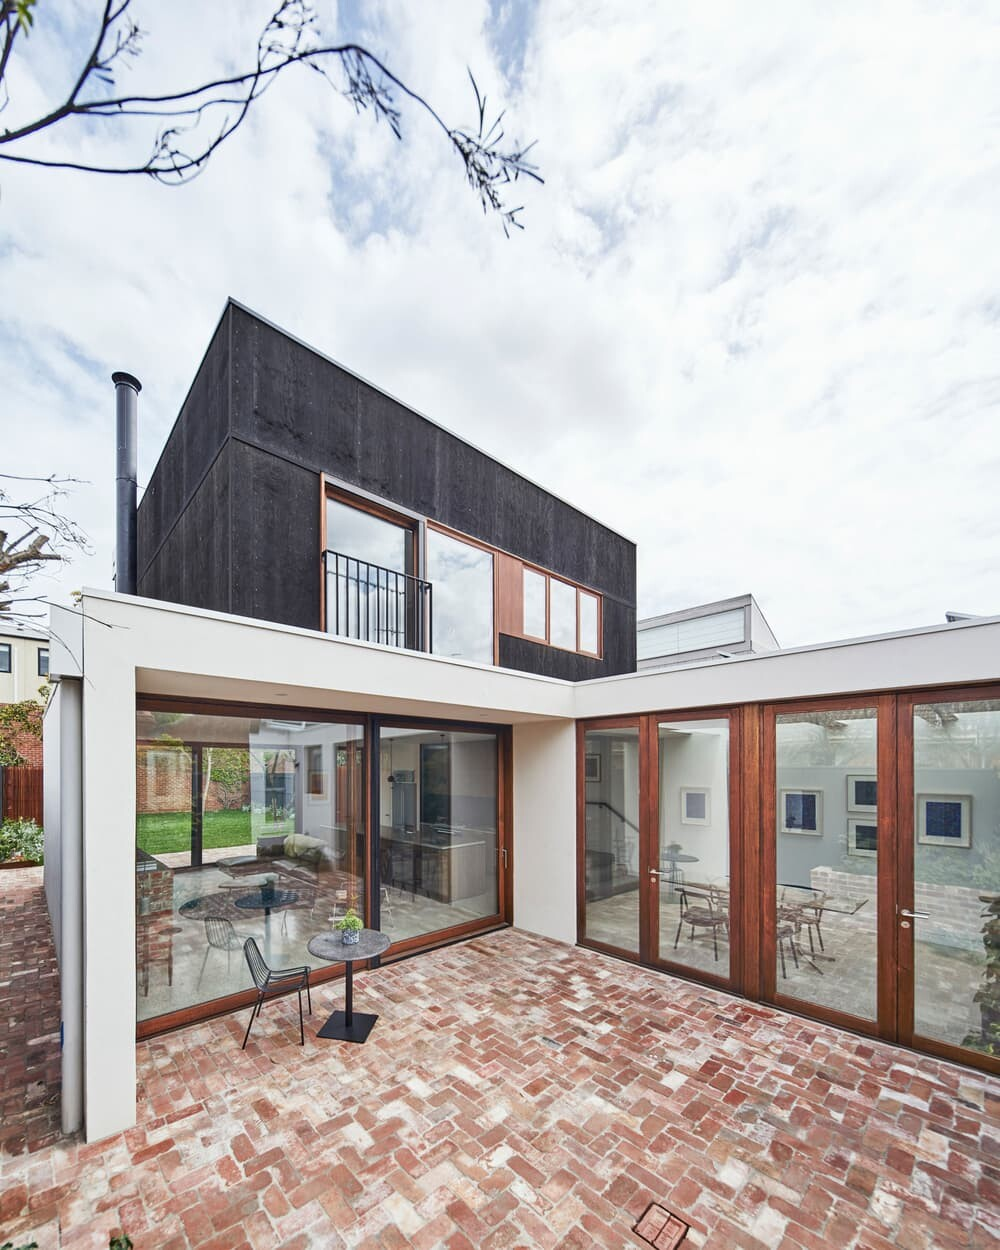 Field Office Architecture Completed an Open-Plan Addition to a Heritage Home